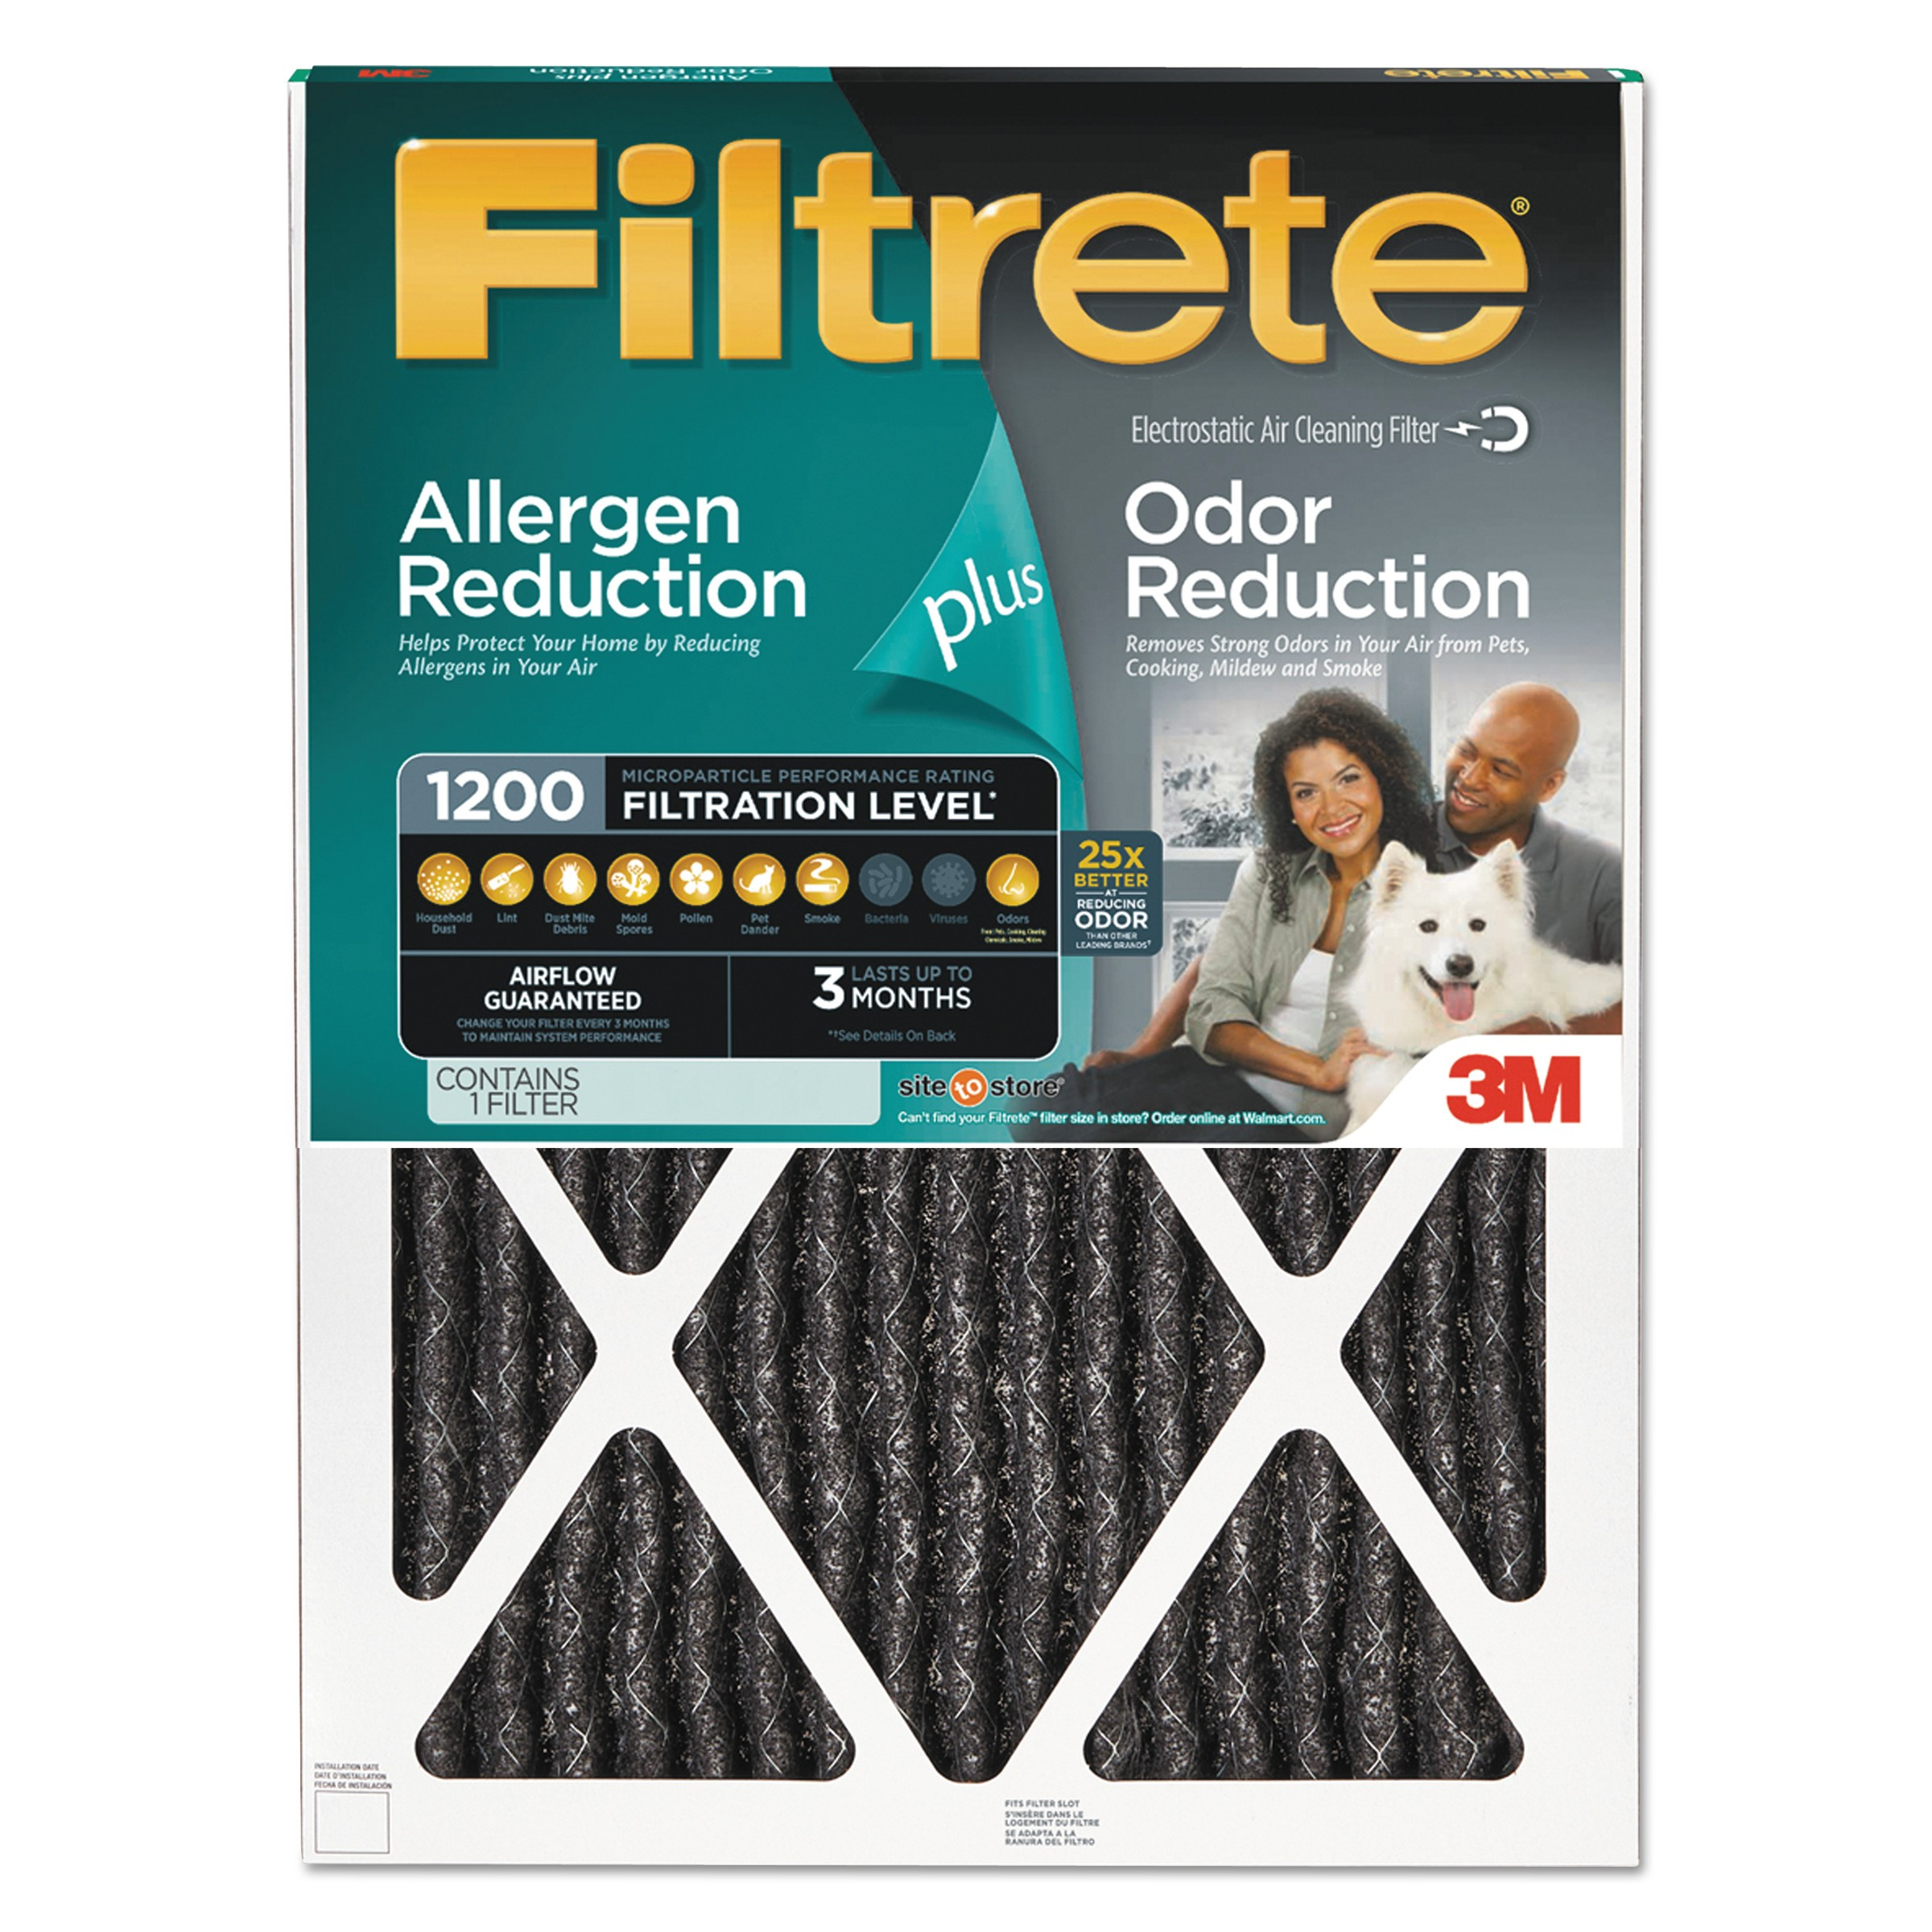 Filtrete Allergen Plus Odor Reduction HVAC Furnace Air Filter, 1200 MPR, 20 x 25 x 1, 1 Filter